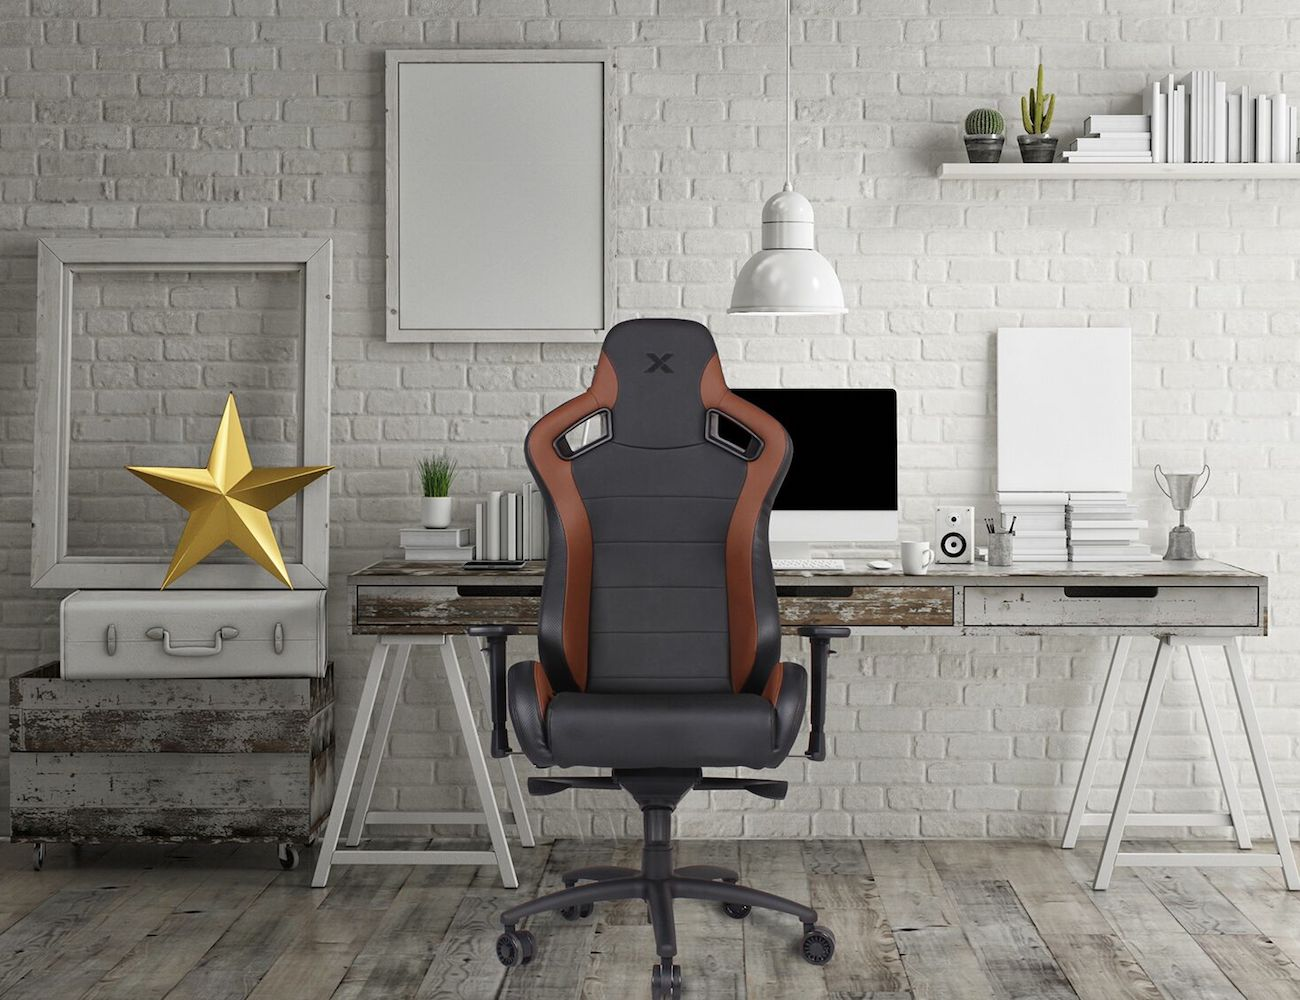 Luxurious Gaming and Lifestyle Chair